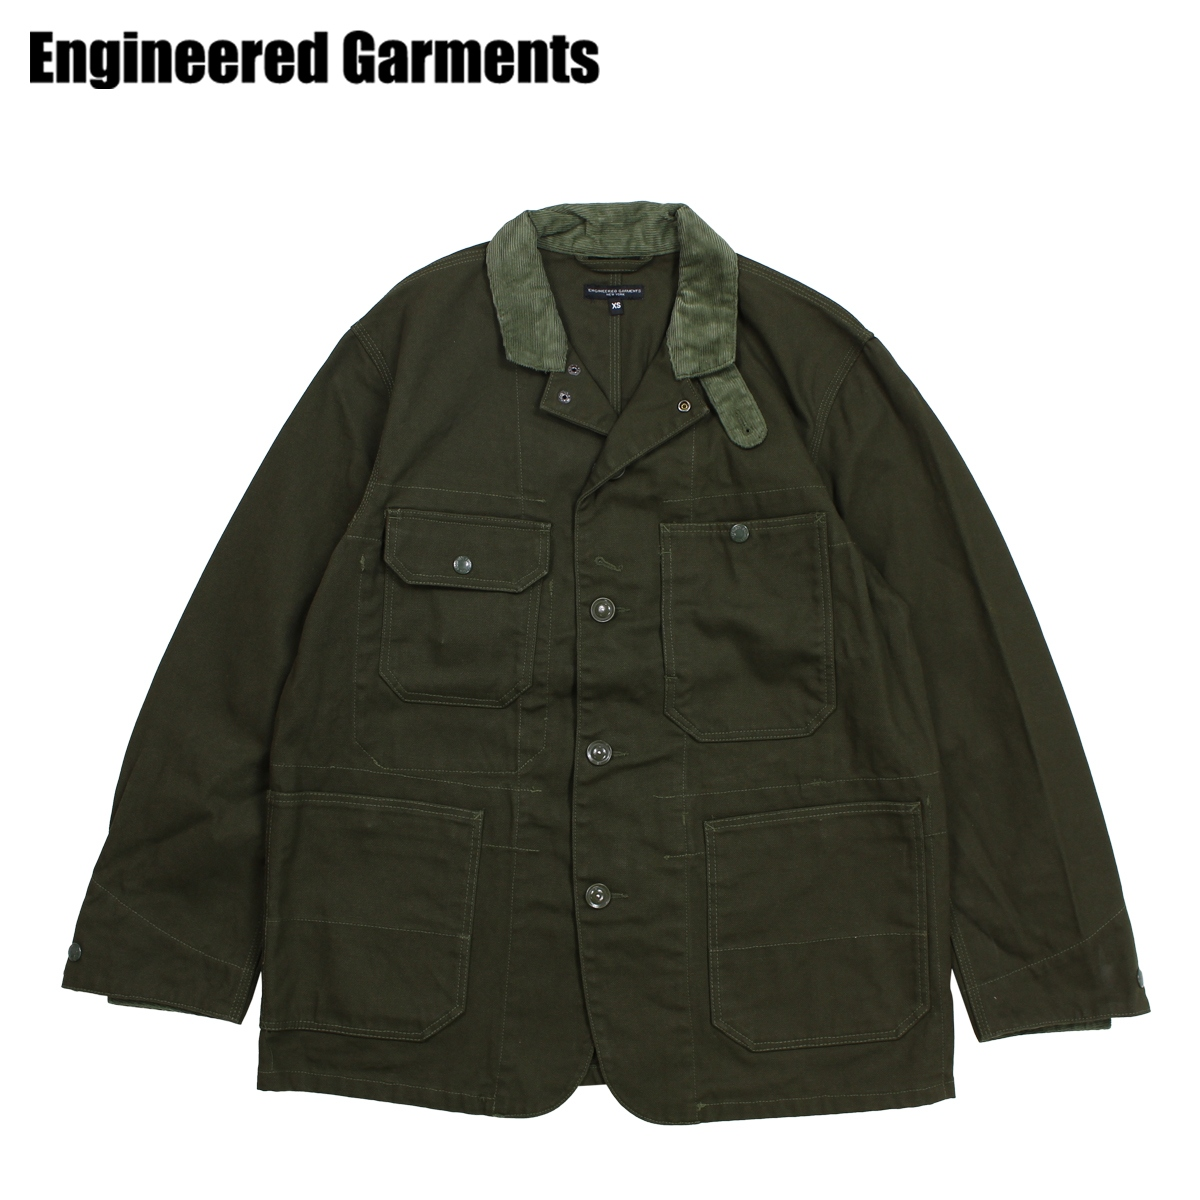 engineered garments japan engineered garments online